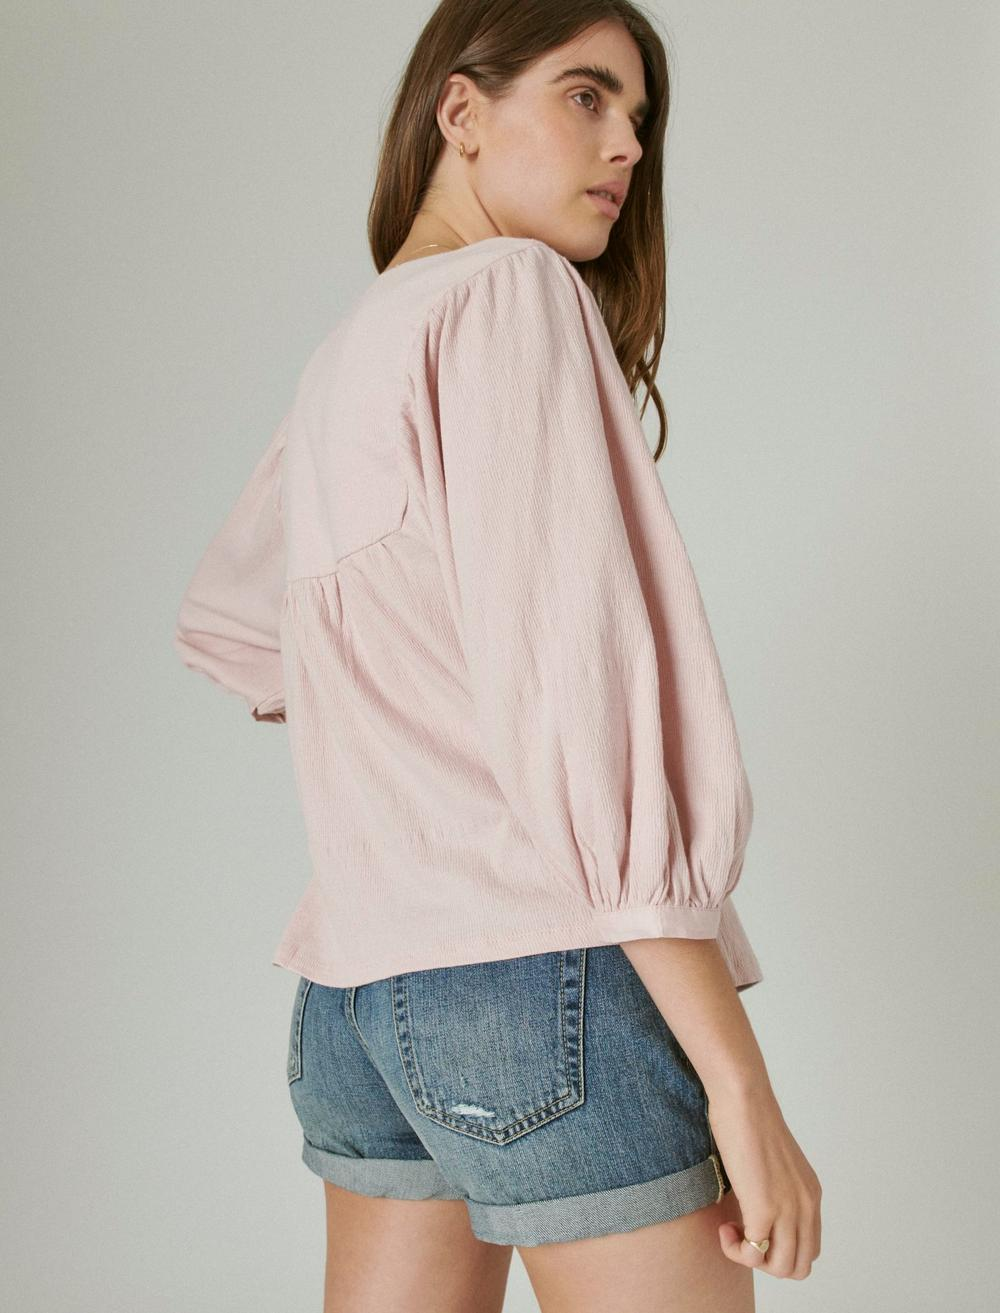 TONAL EMBROIDERED SQUARE NECK BLOUSE, image 4